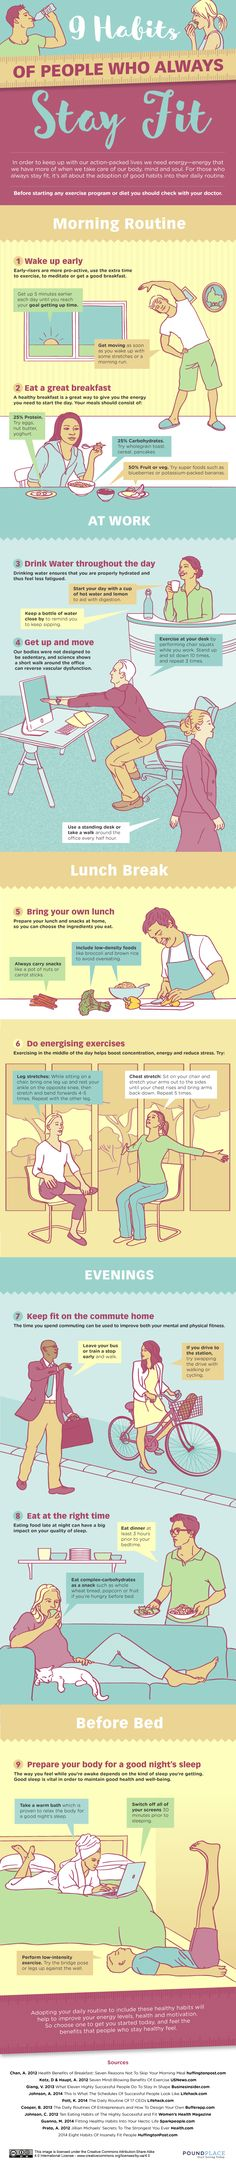 Get the top 9 habits of people who always stay fit in this fun infographic! Fitness tips & health tips to help you live healthier!